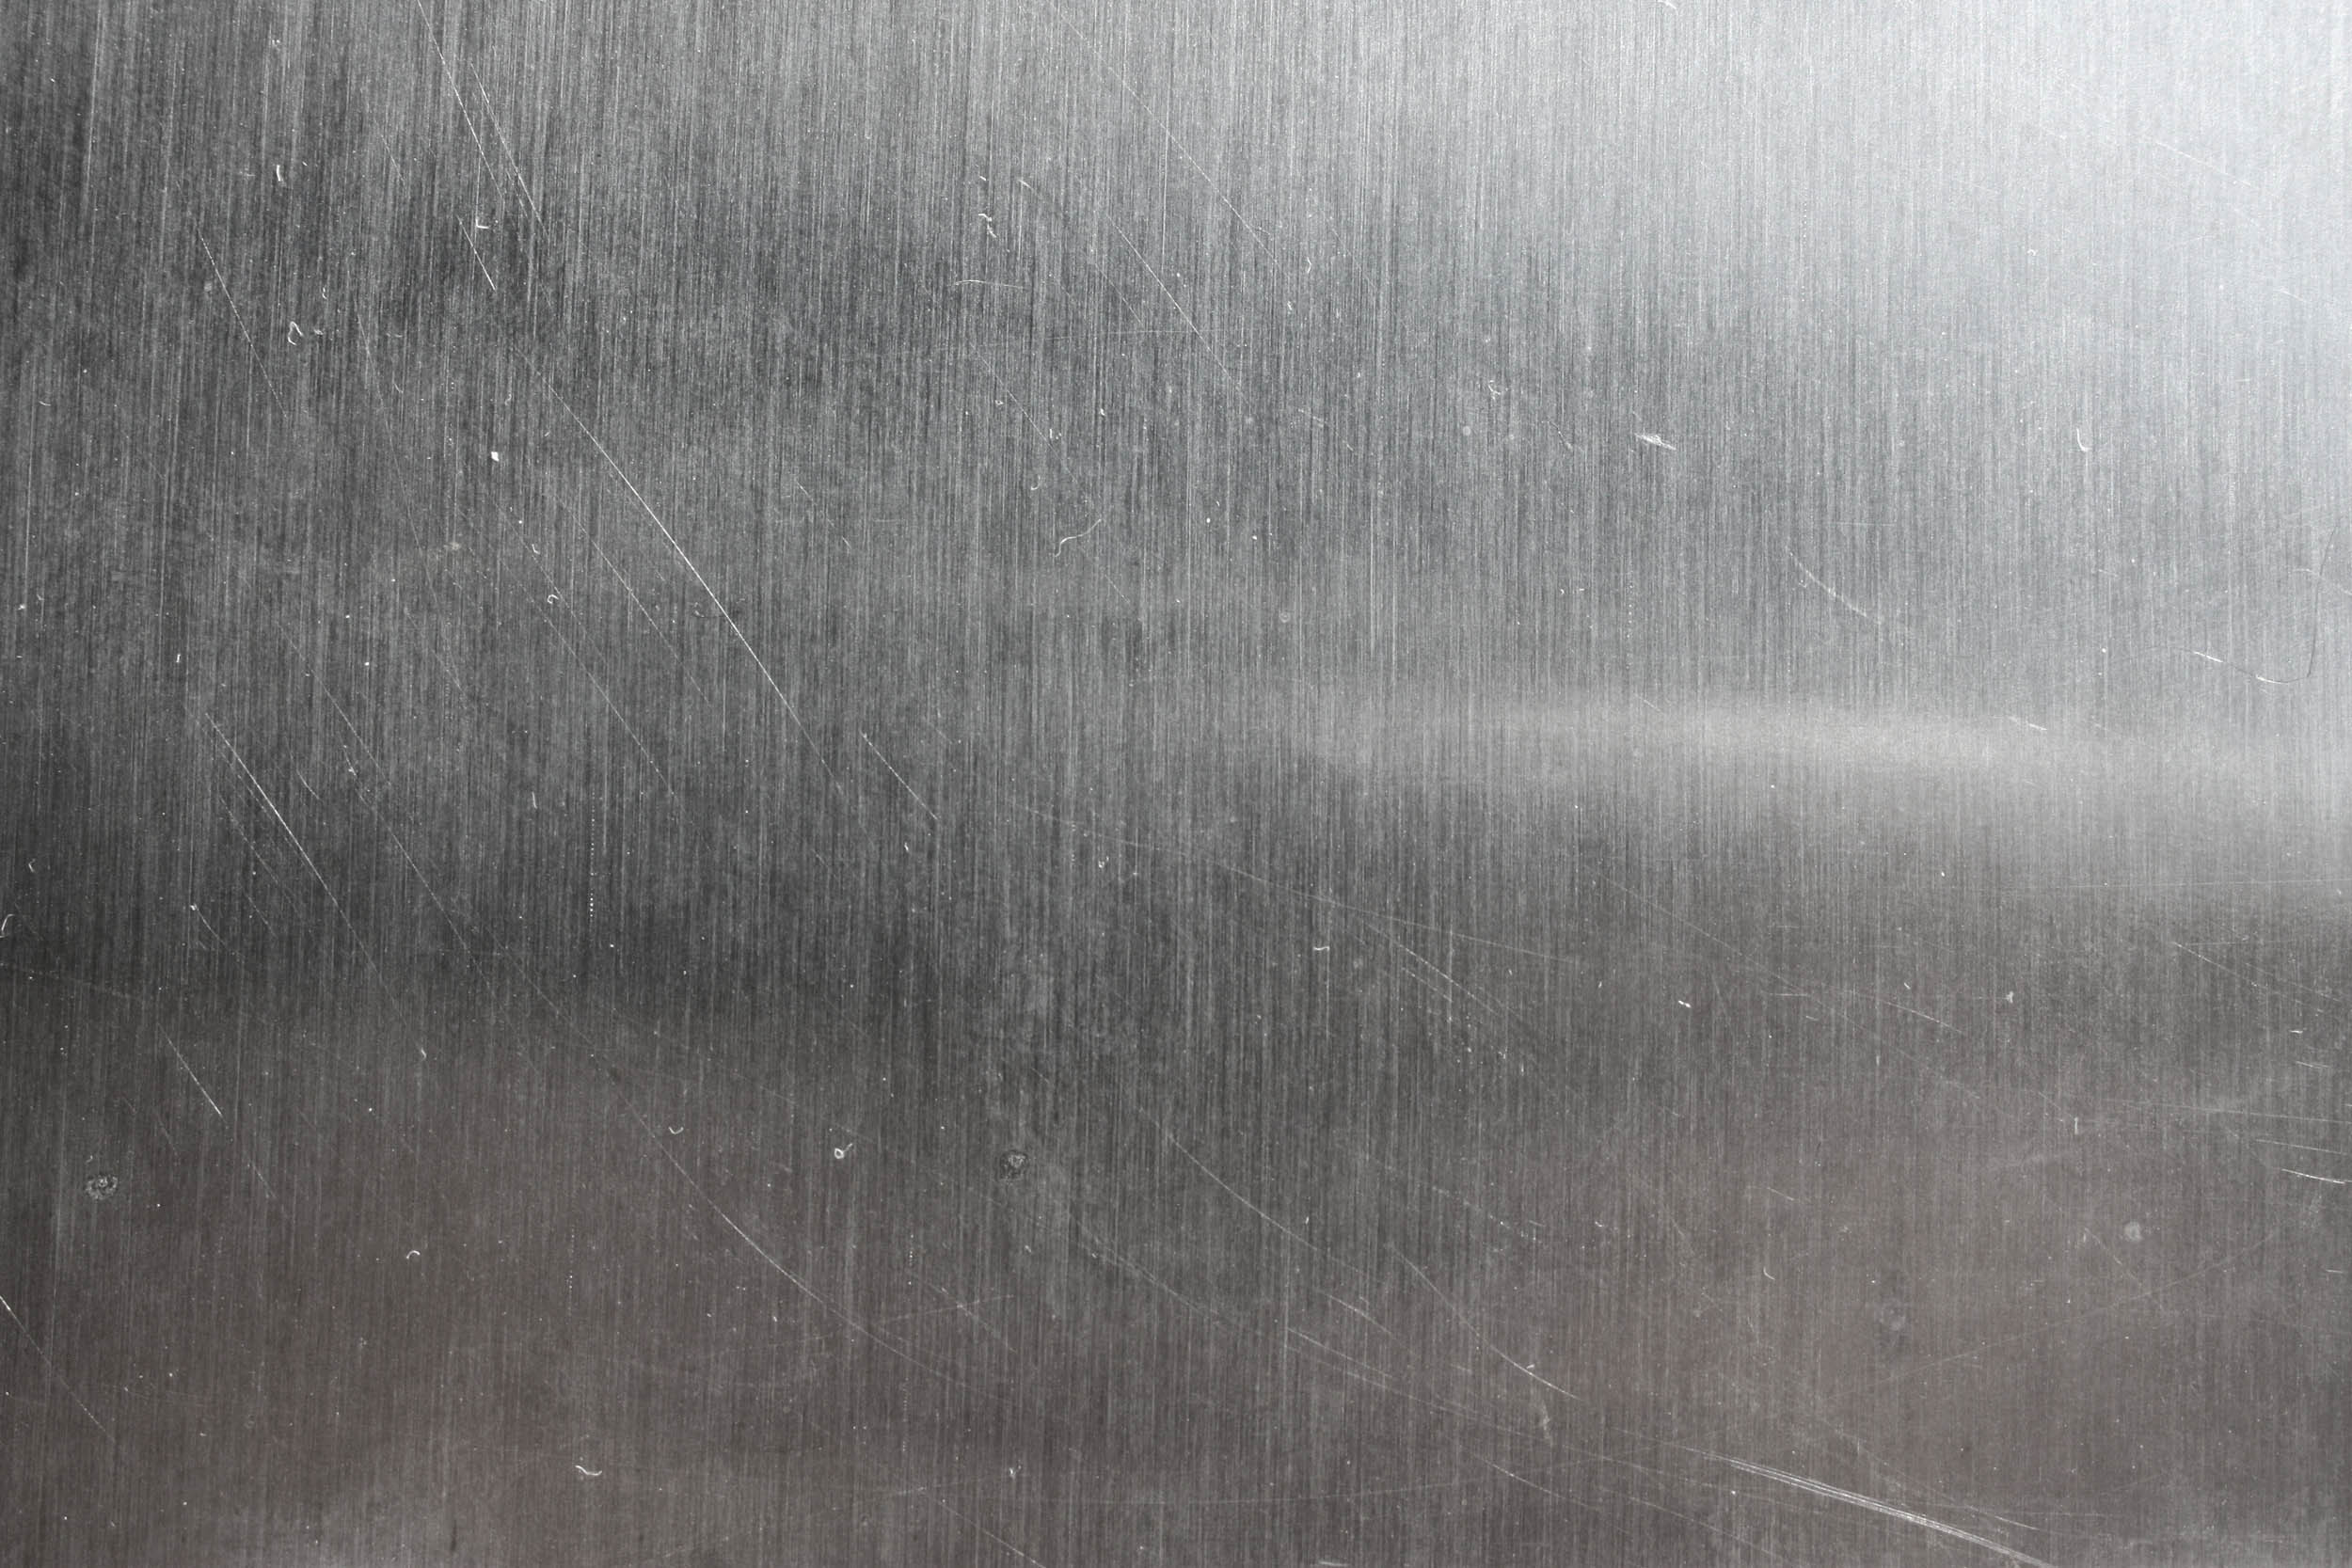 stainless steel texture – Google Search